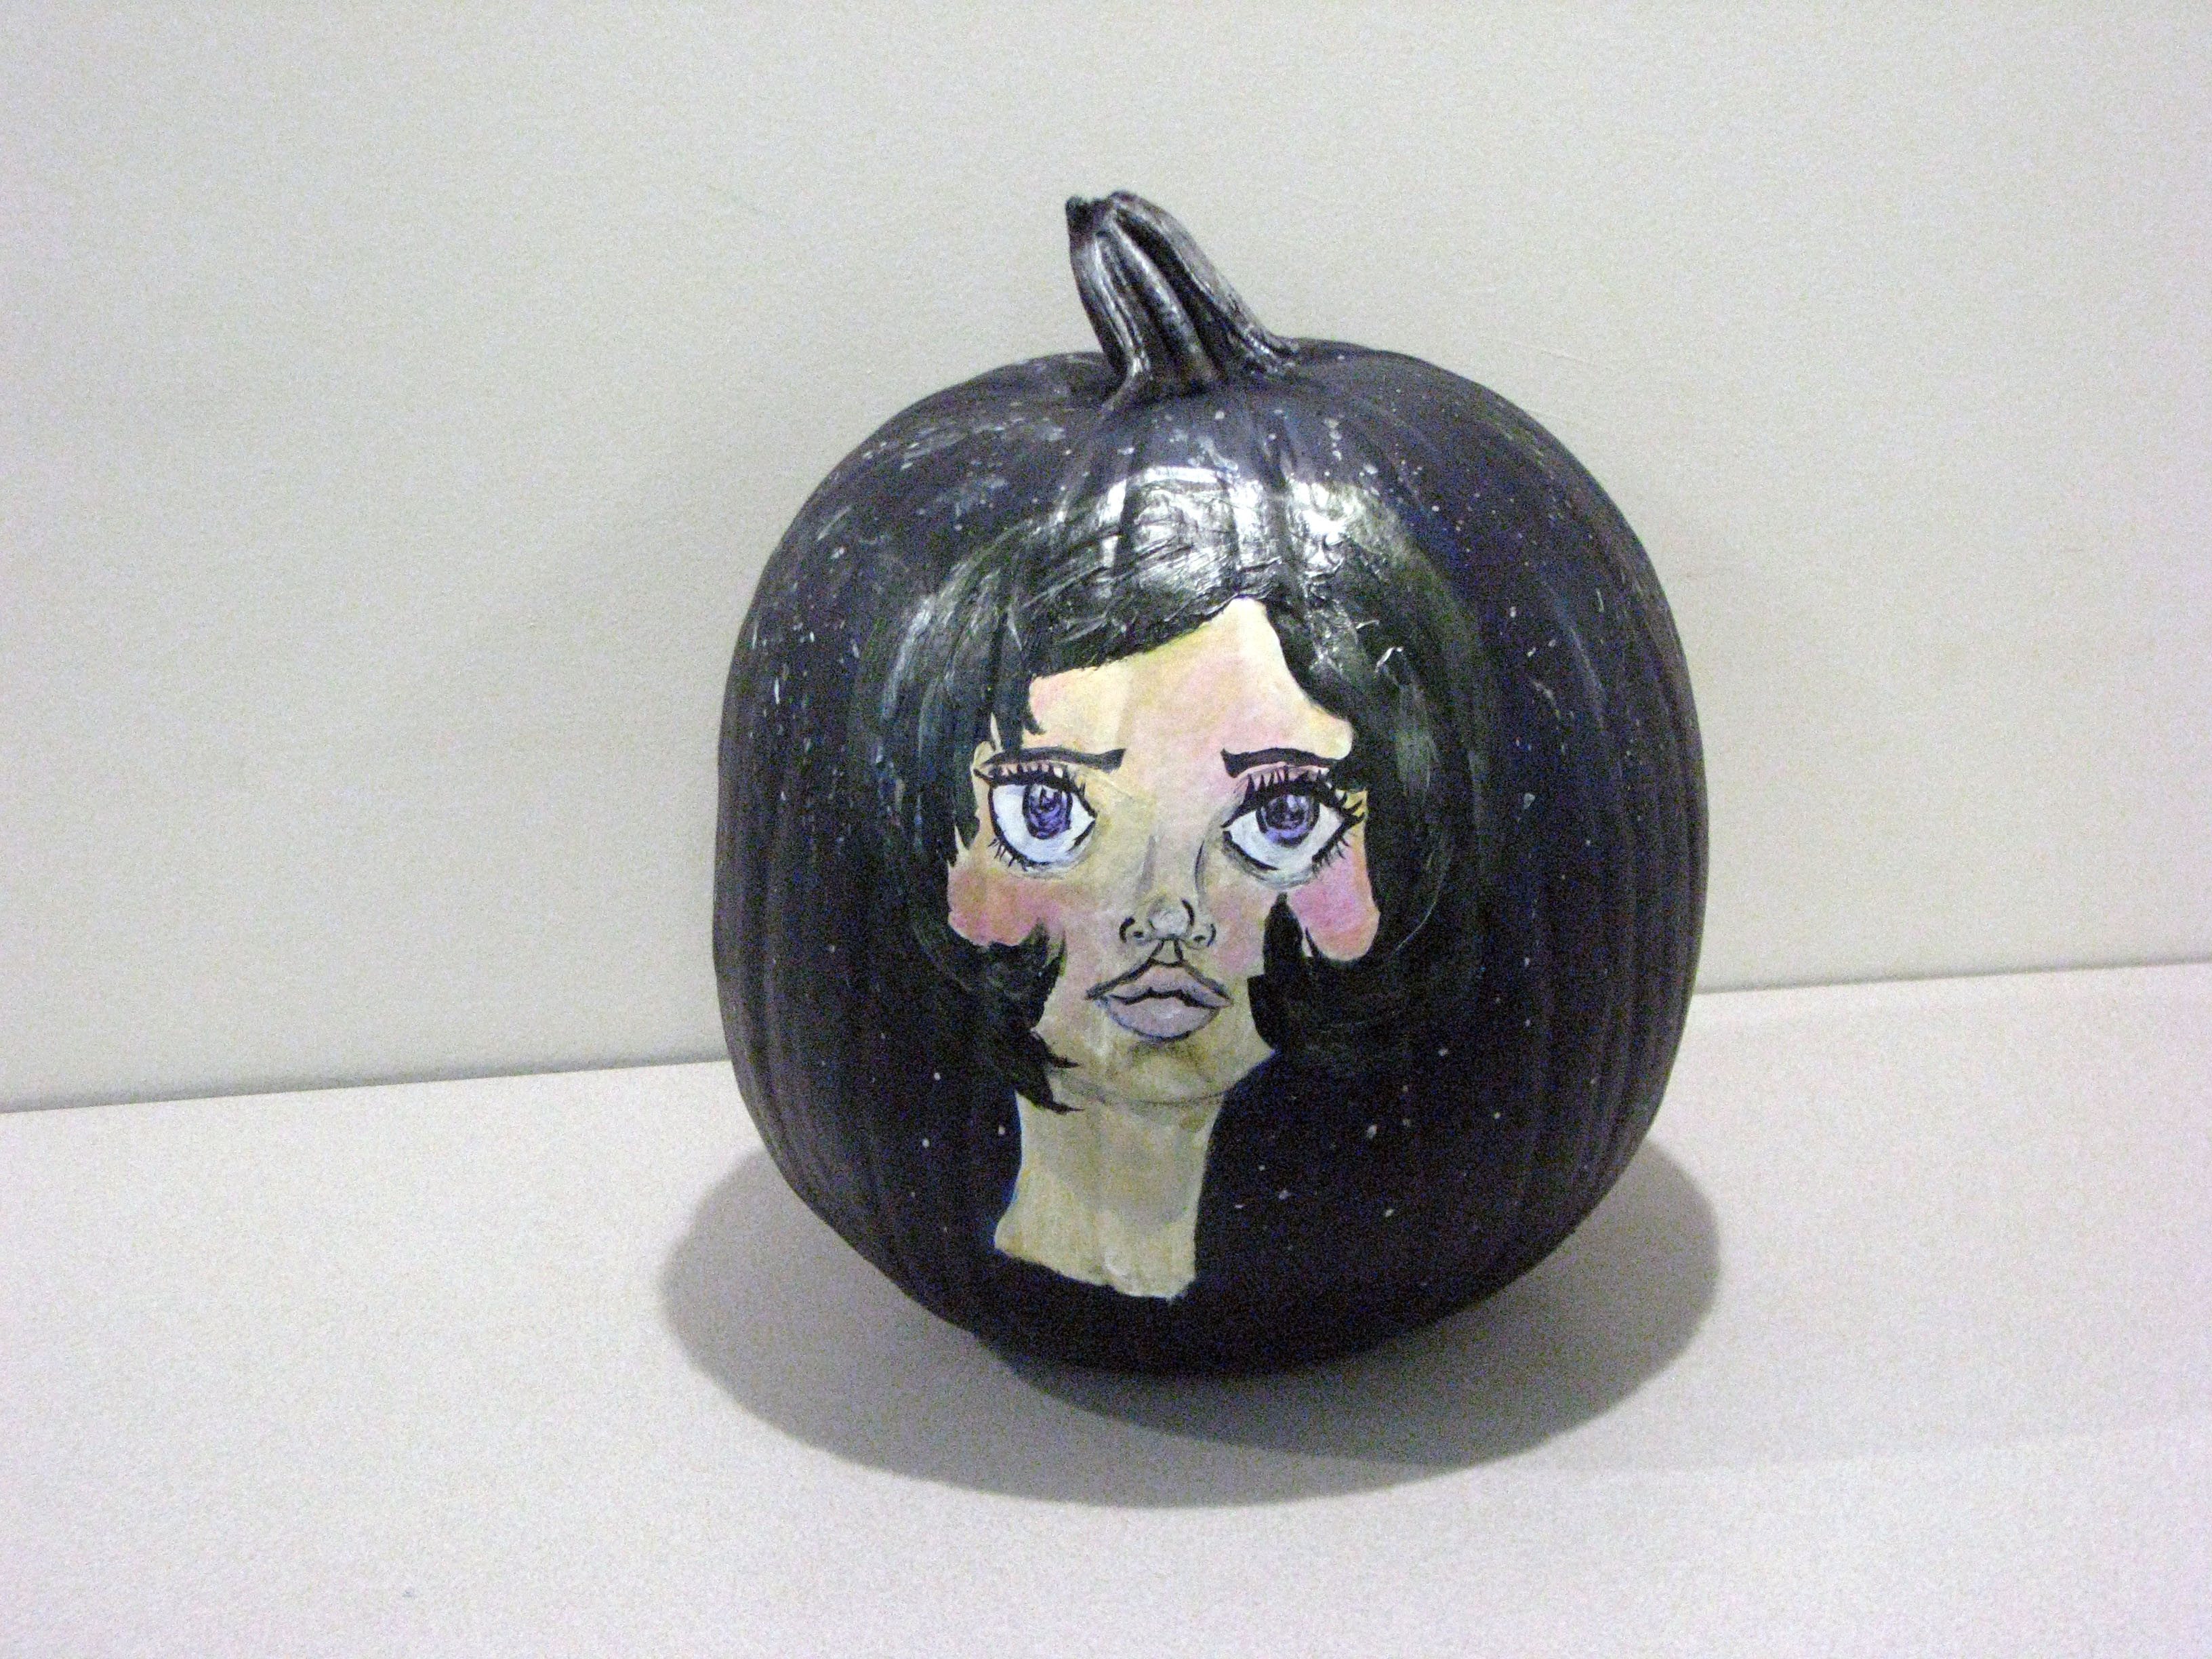 Pumpkin painted with a portrait